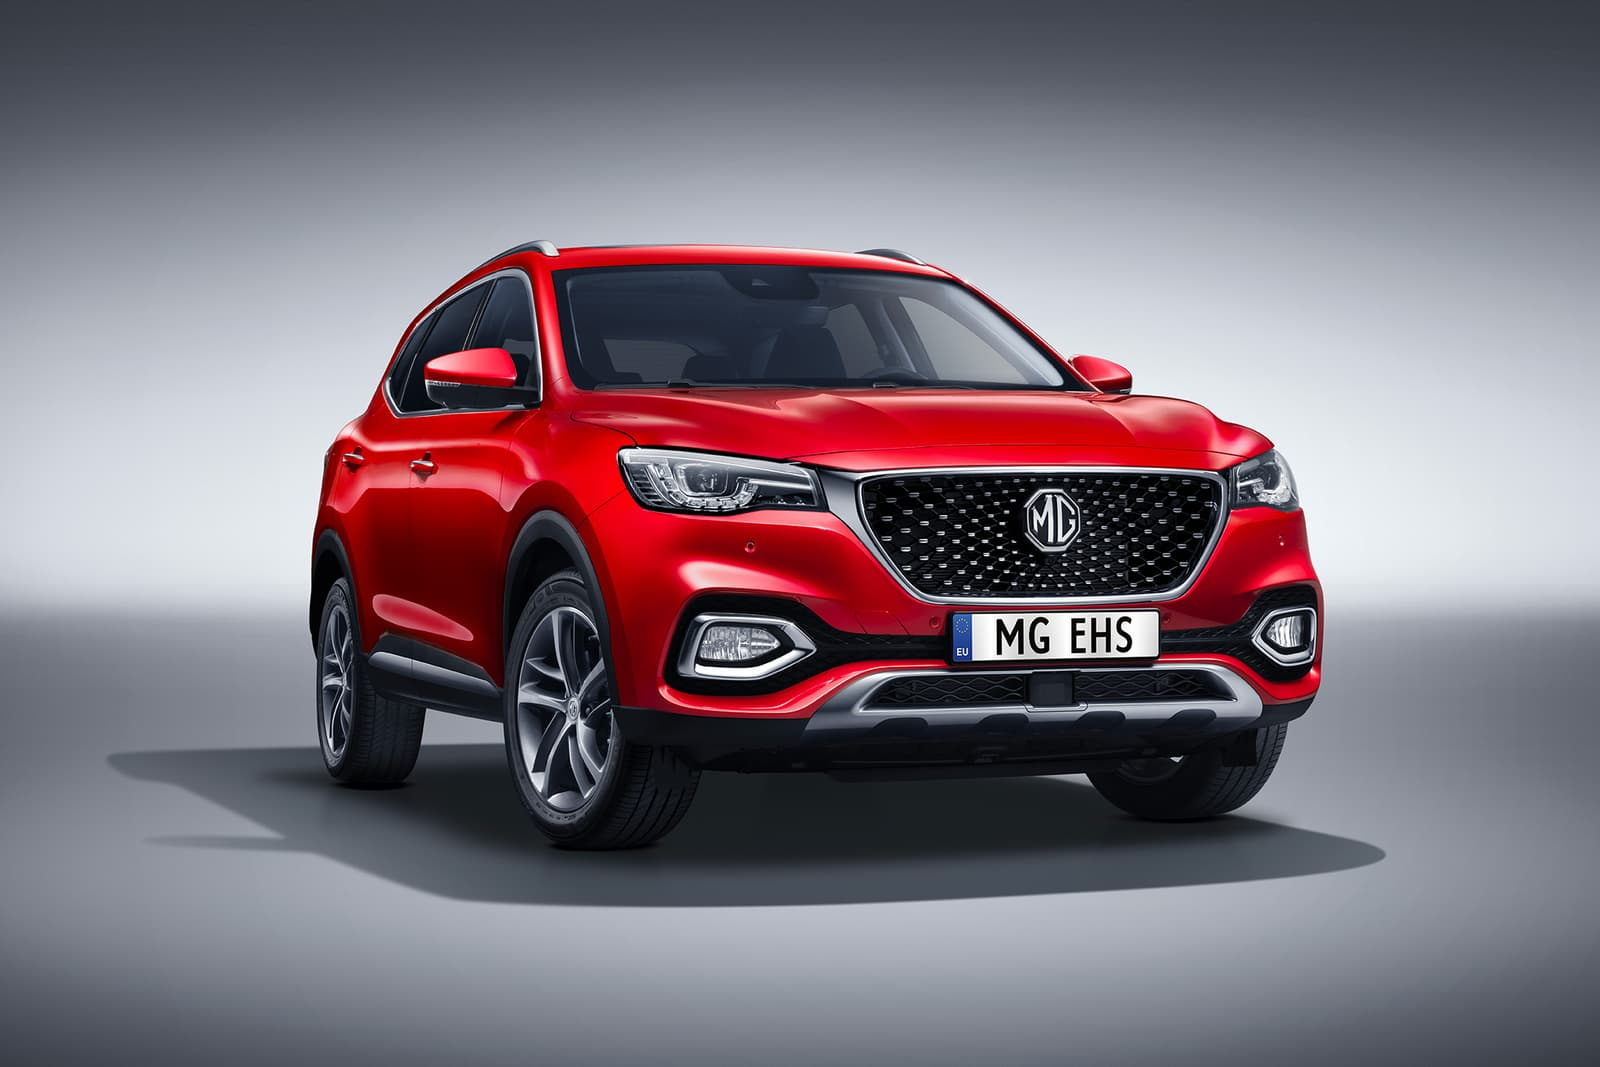 MG EHS SUV hybride rechargeable 2021